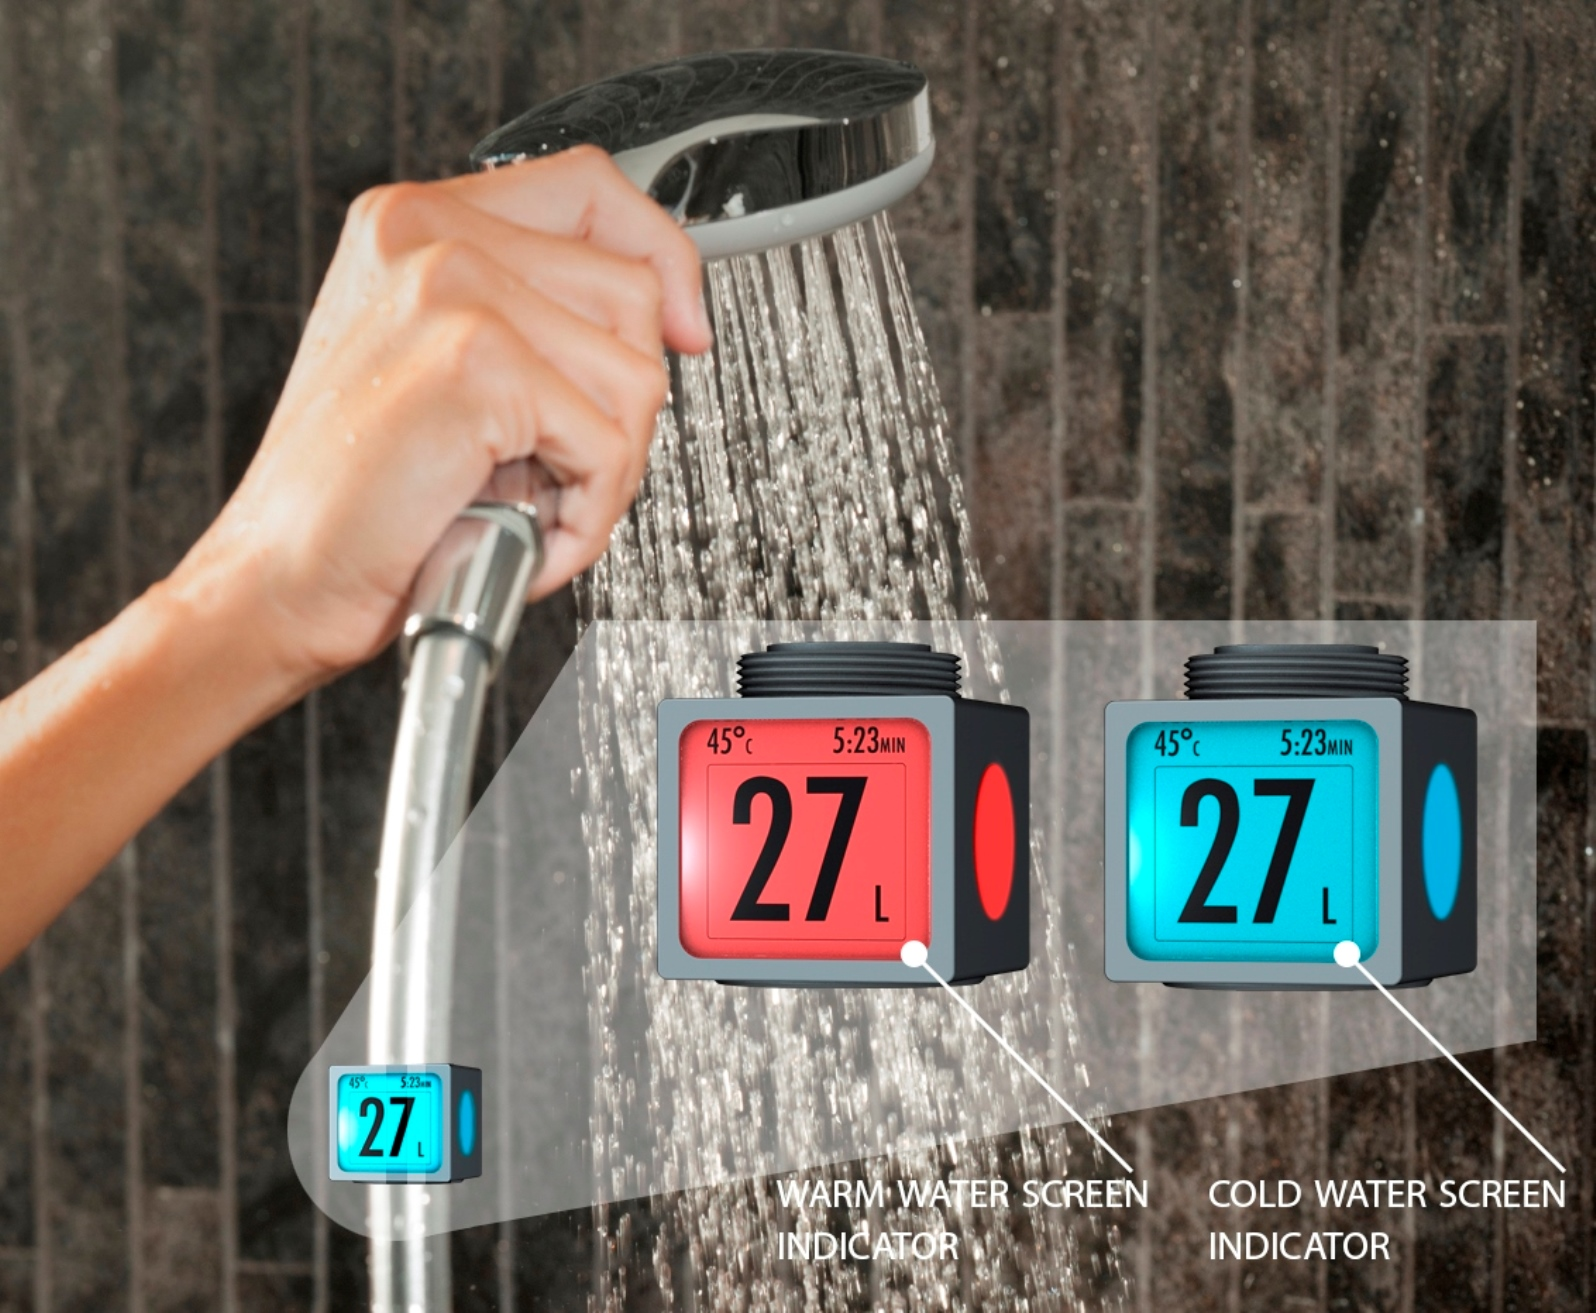 The meter makes it easy to watch water usage on any faucet. Photo: courtesy